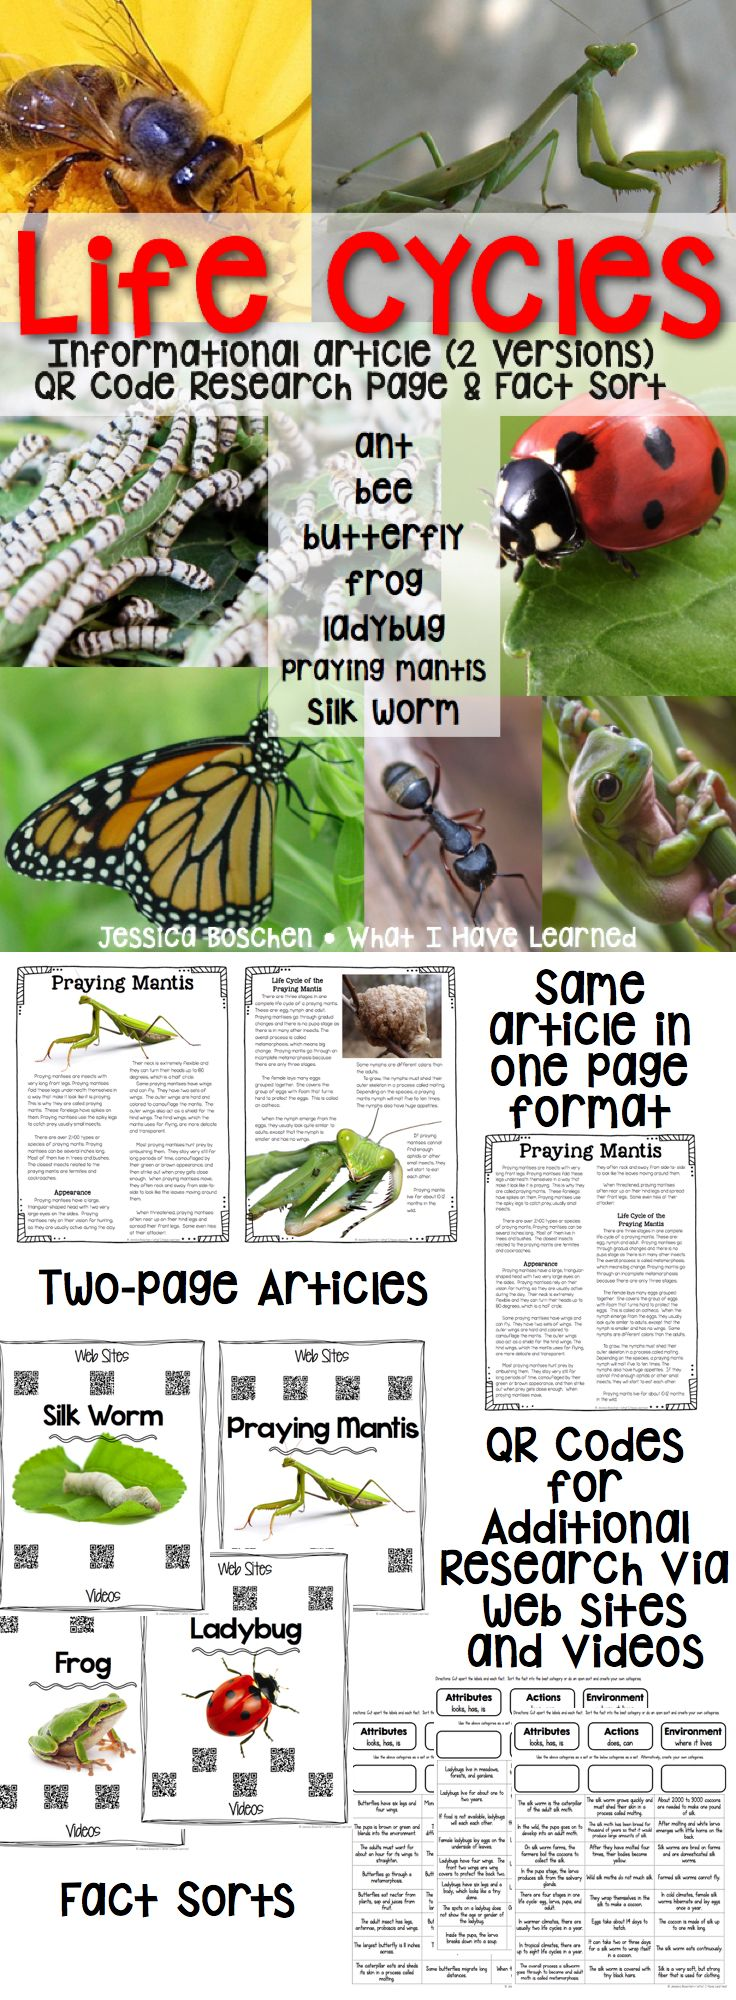 Do you struggle to find on-level informational texts for your students to read?  These Life Cycle Articles come in two formats (two-page with photos and one page with just text) and include QR Codes for additional research via web sites and videos, and a Fact Sheet useful for sorting.  These are perfect for second grade and third grade classrooms studying life cycles in science.